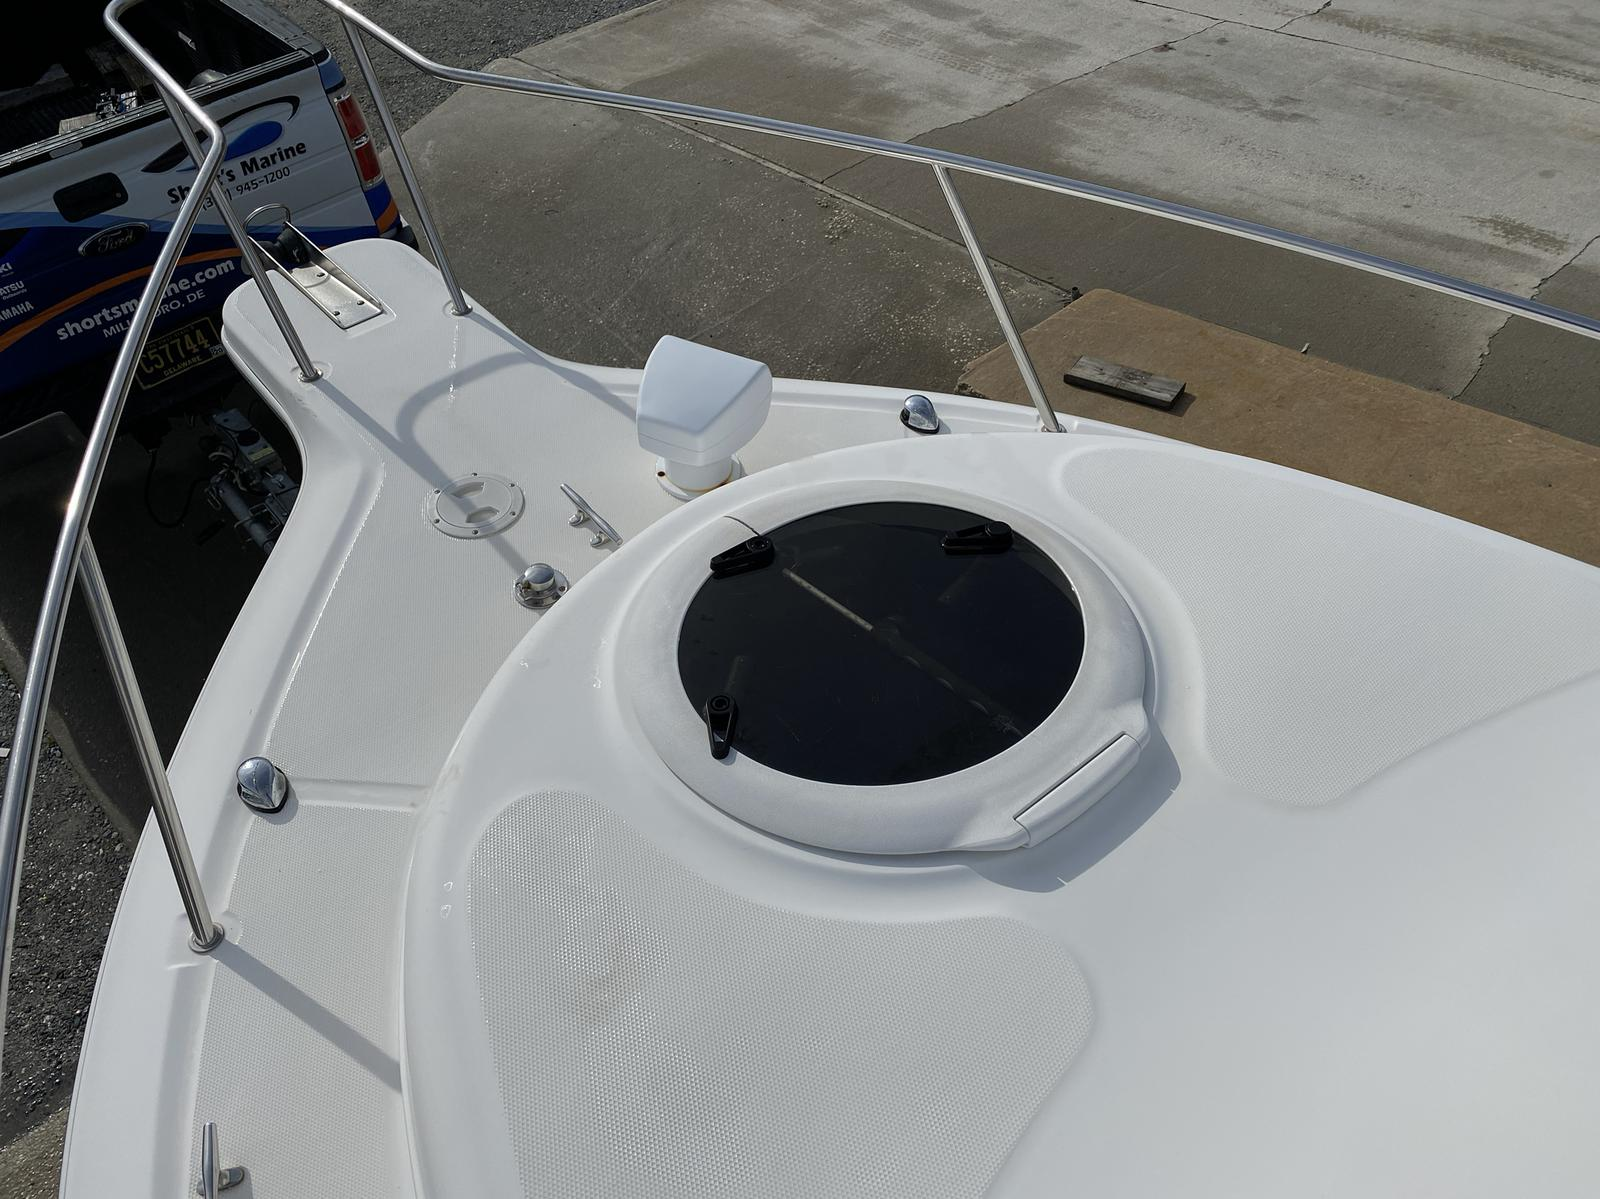 2006 Sea Fox boat for sale, model of the boat is Around 216 & Image # 6 of 13